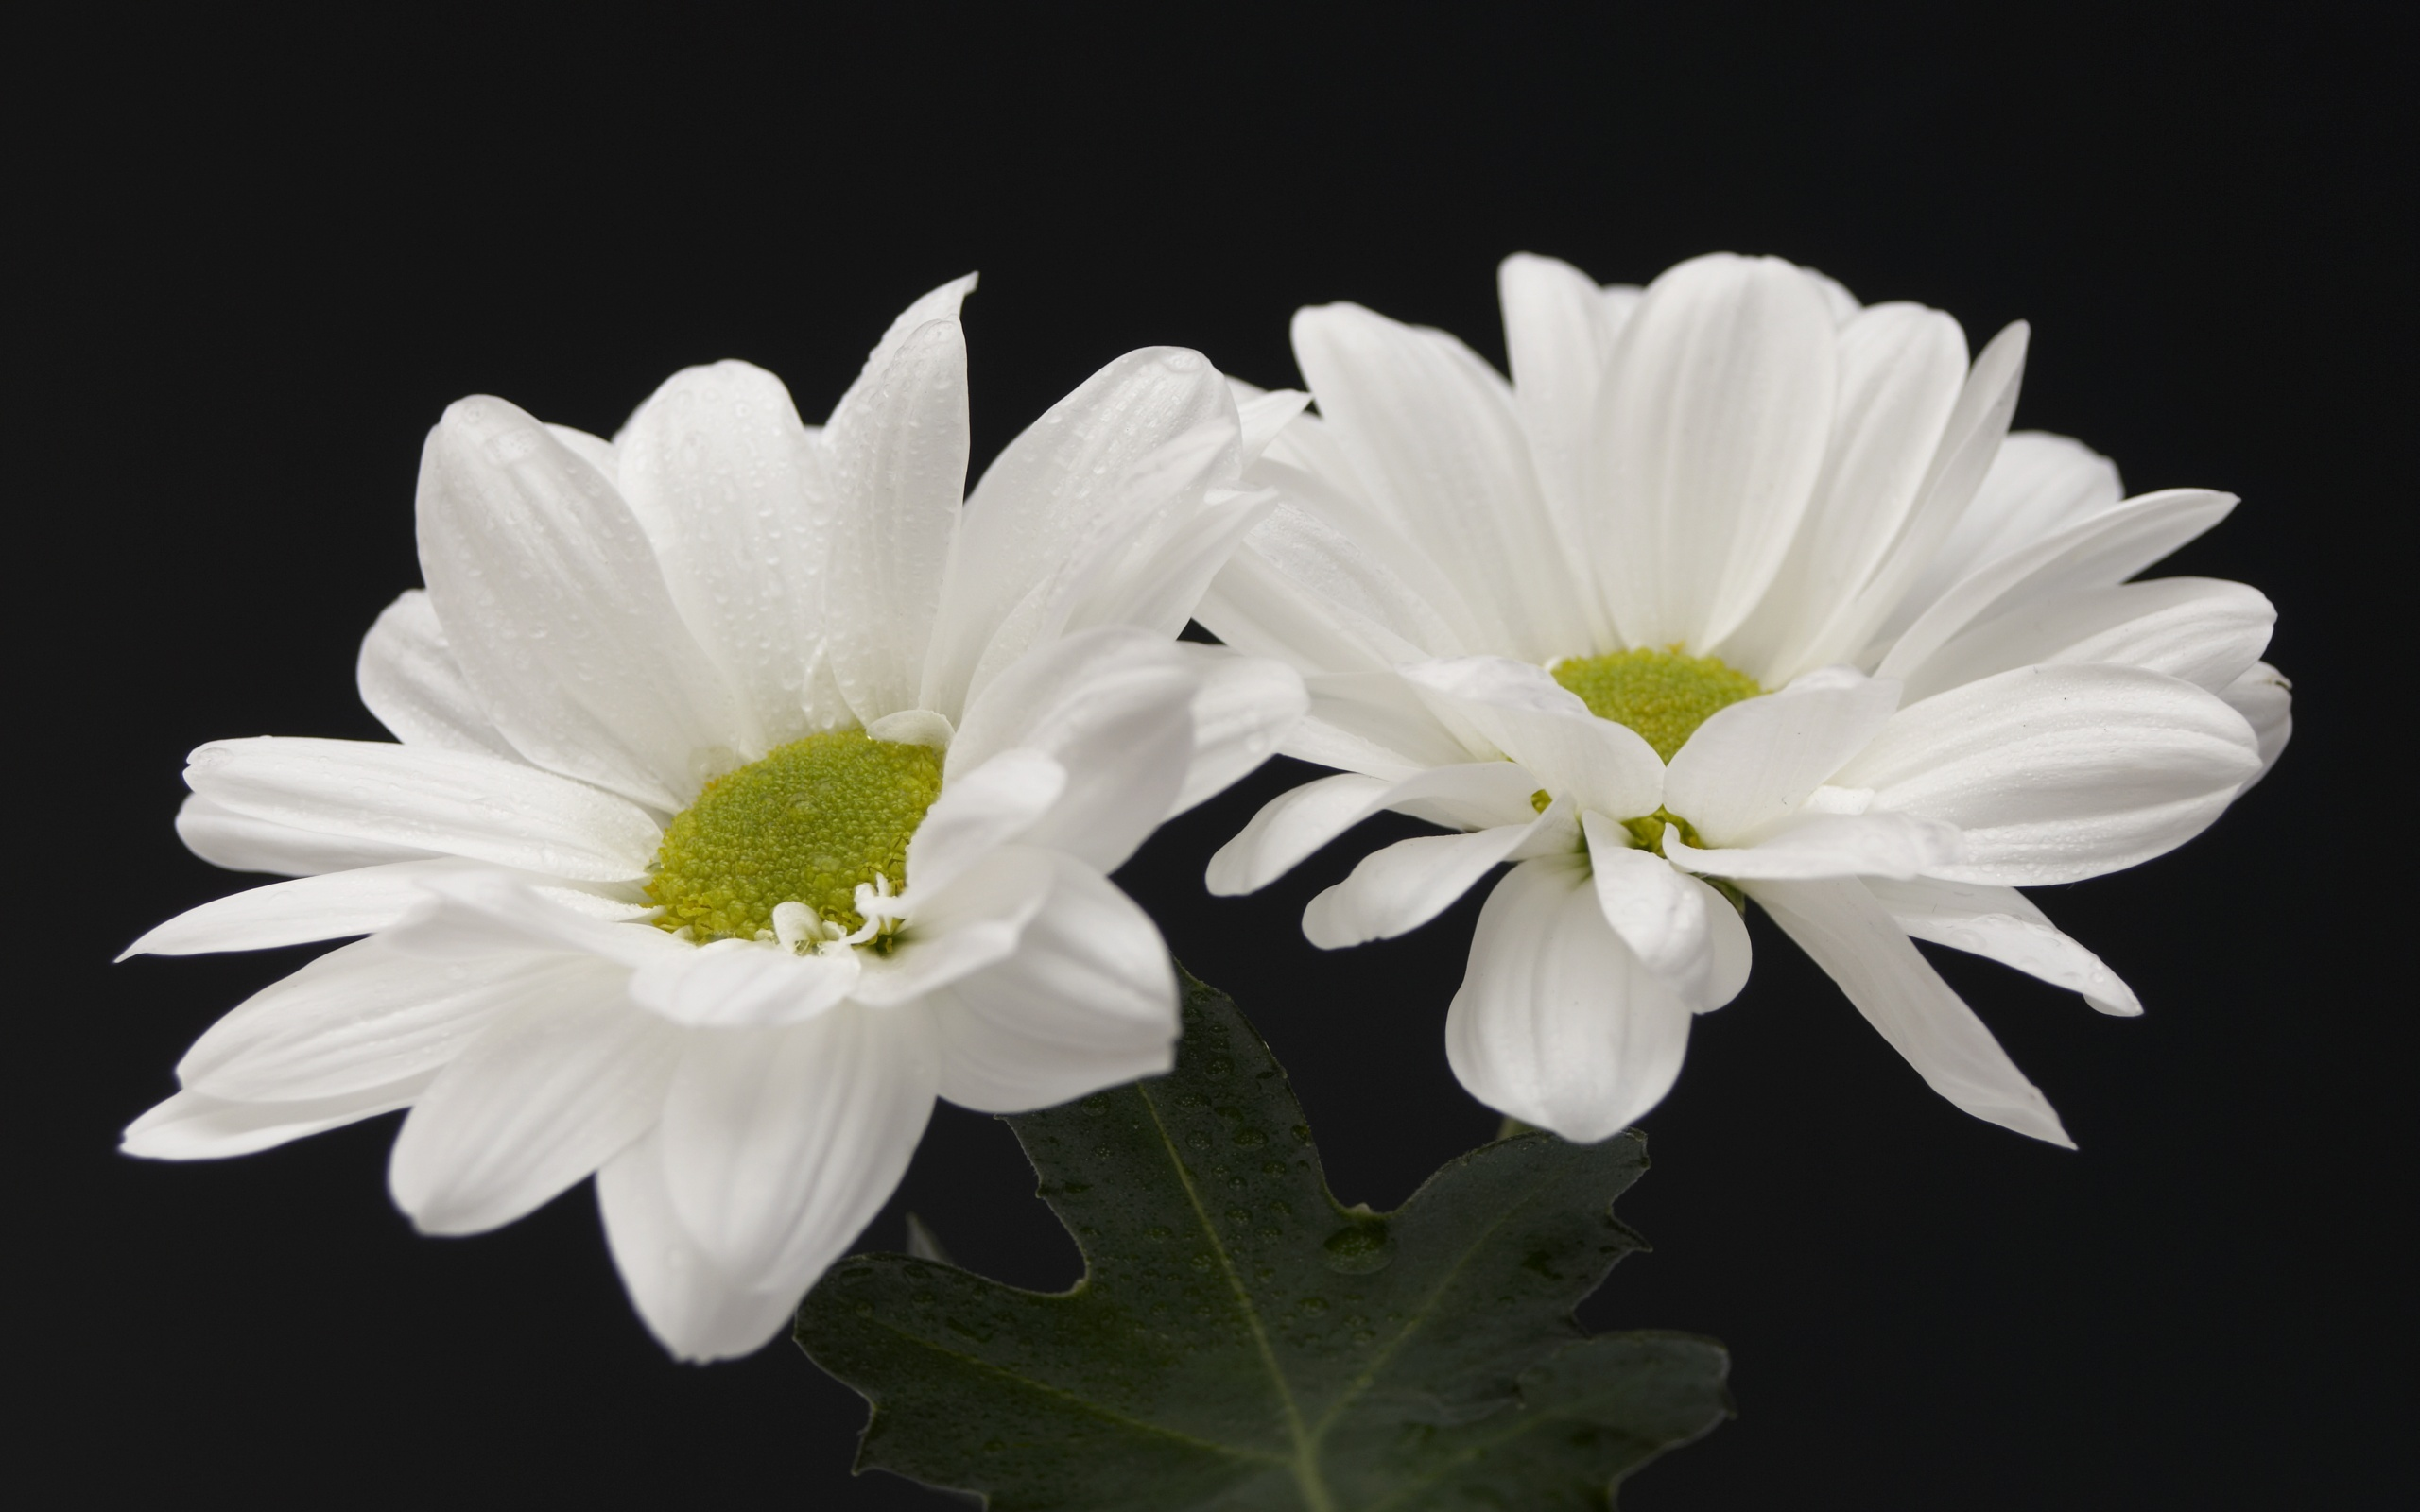 2560x1600 Two white flowers desktop PC and Mac wallpaper 2560x1600